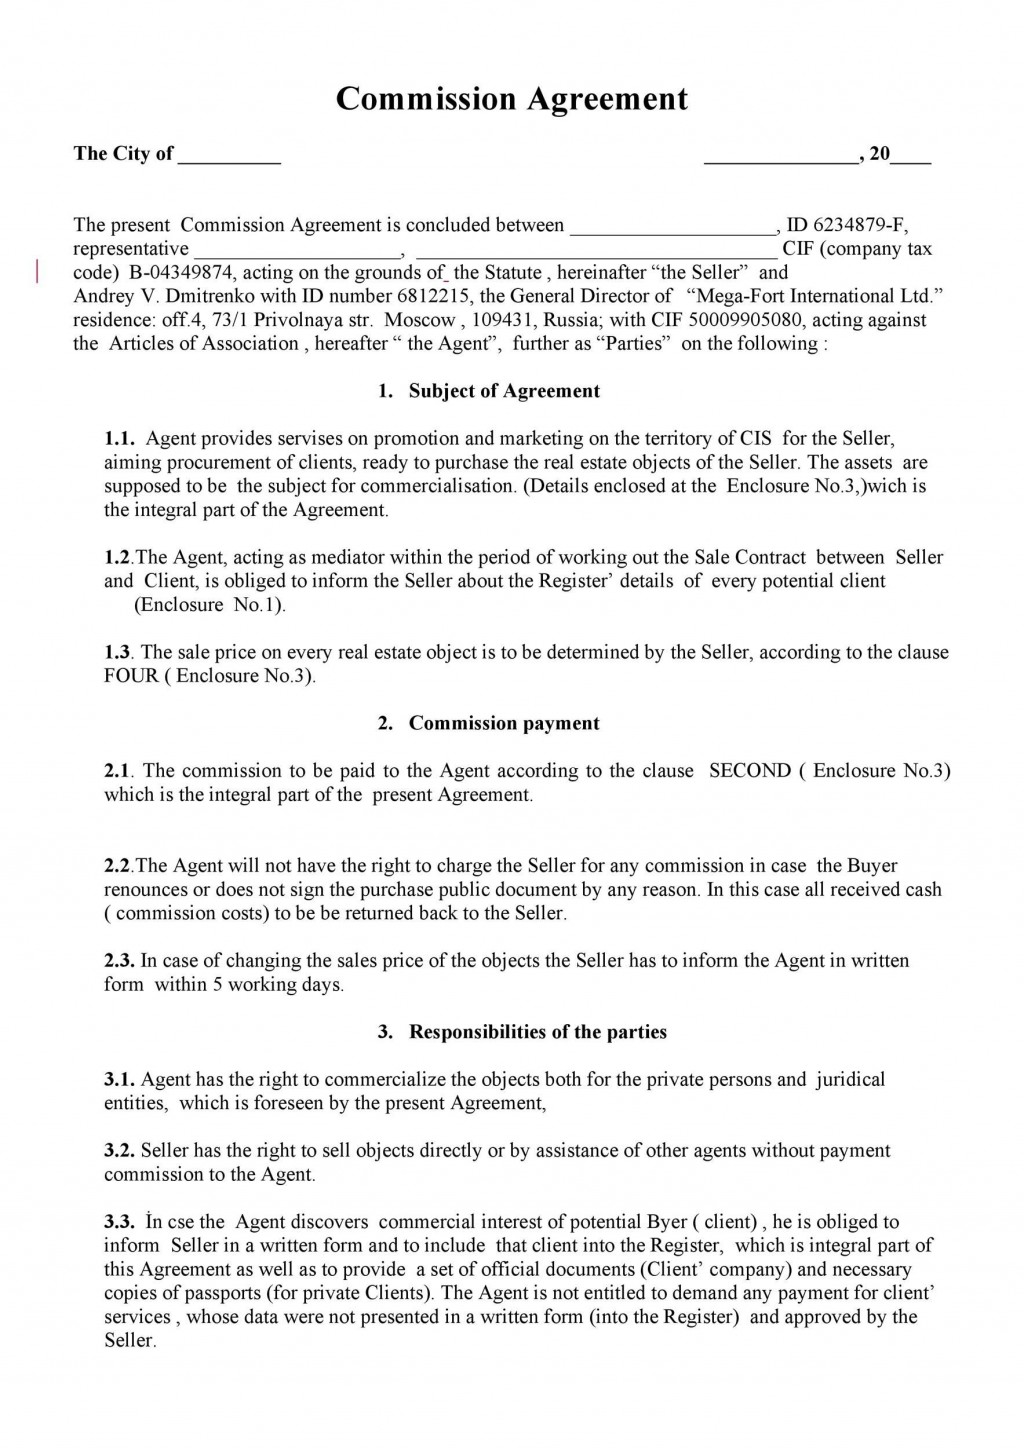 004 Magnificent Property Purchase Agreement Template Uk Highest Quality Large